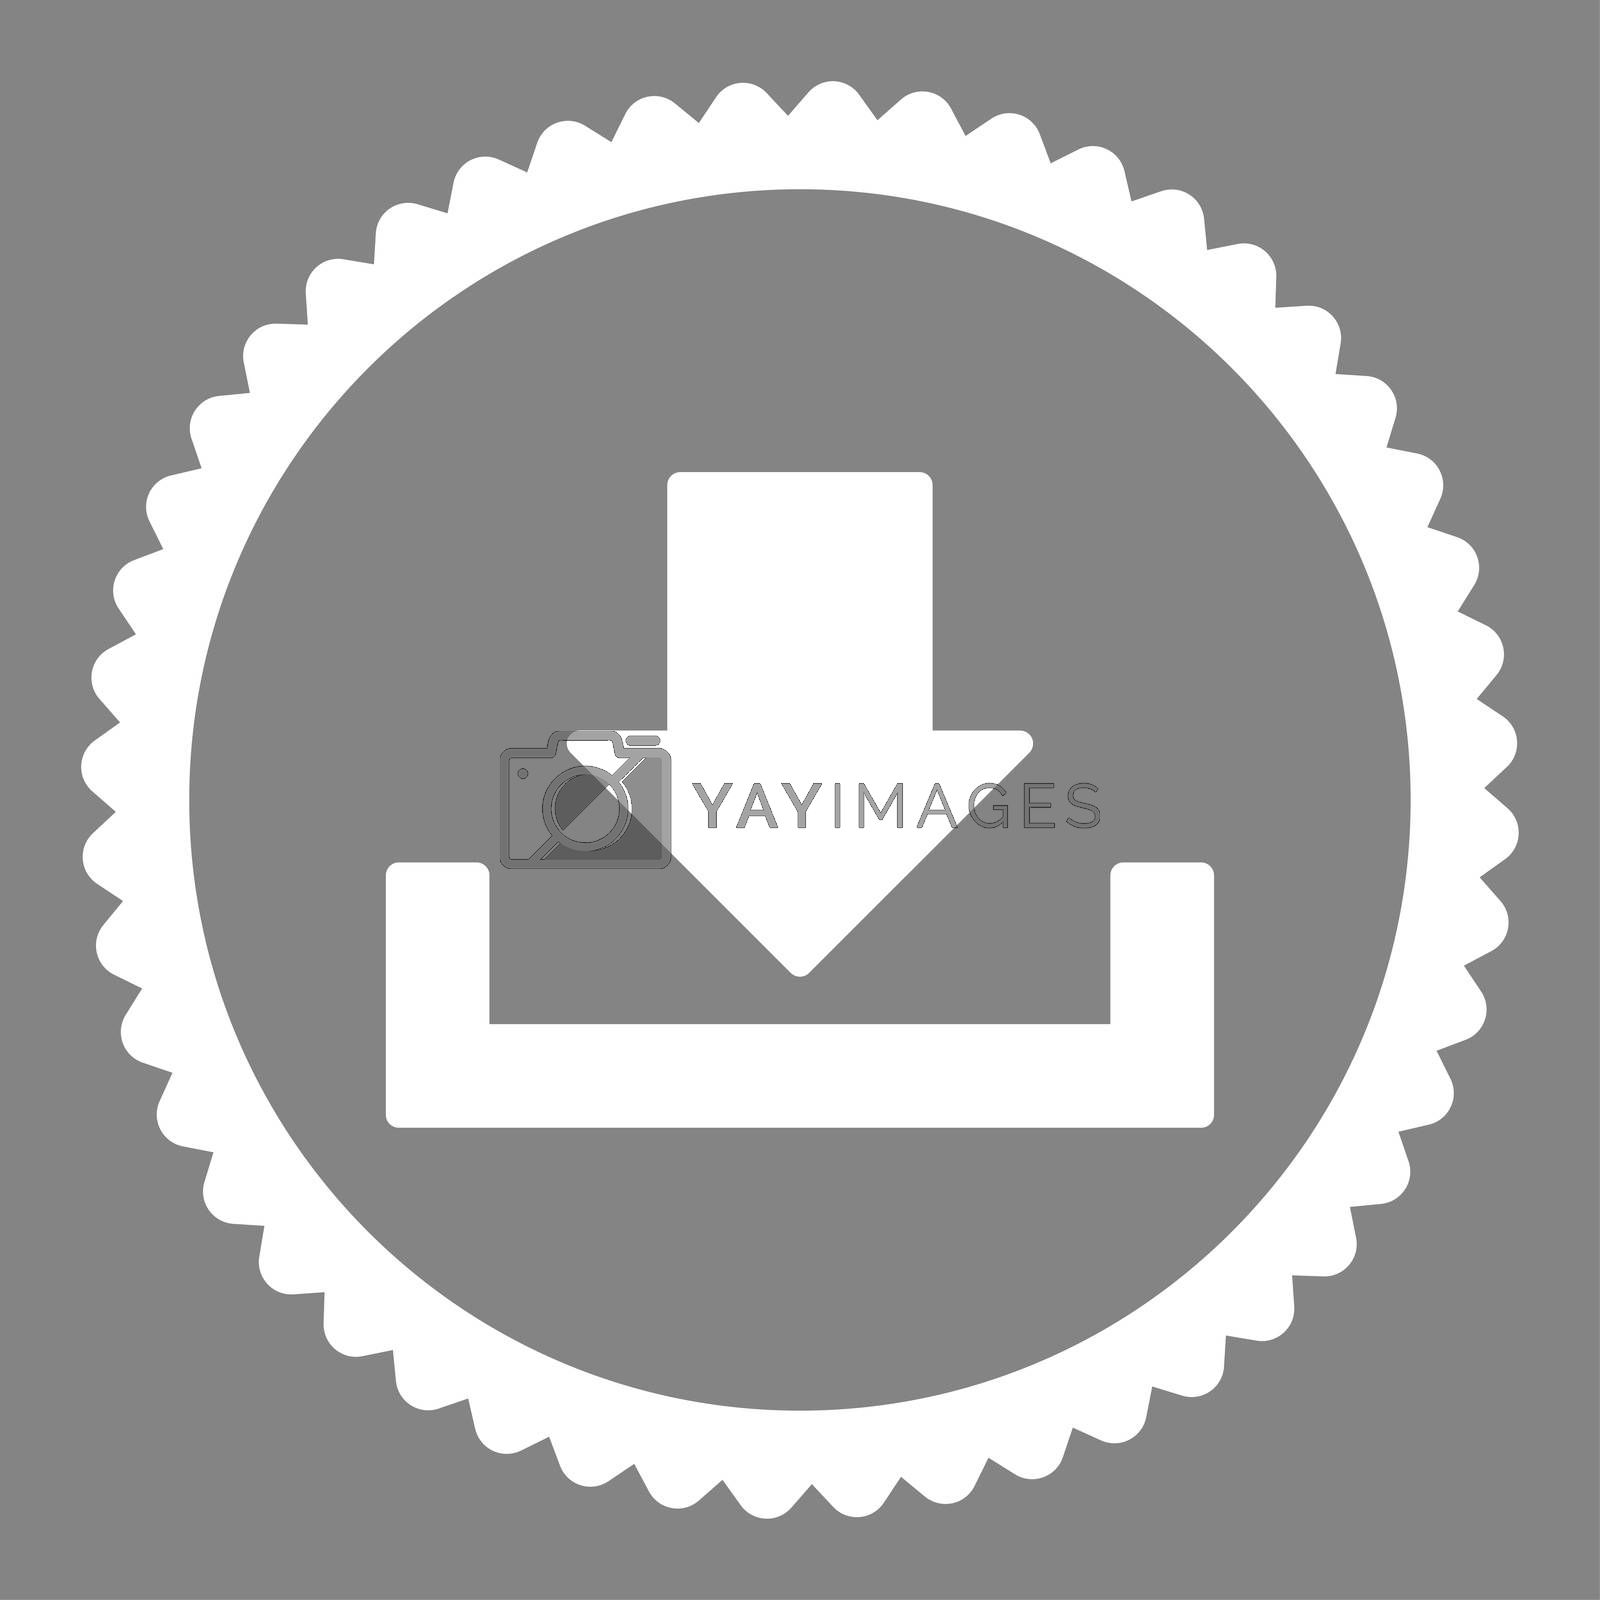 Download flat white color round stamp icon by Aha-Soft